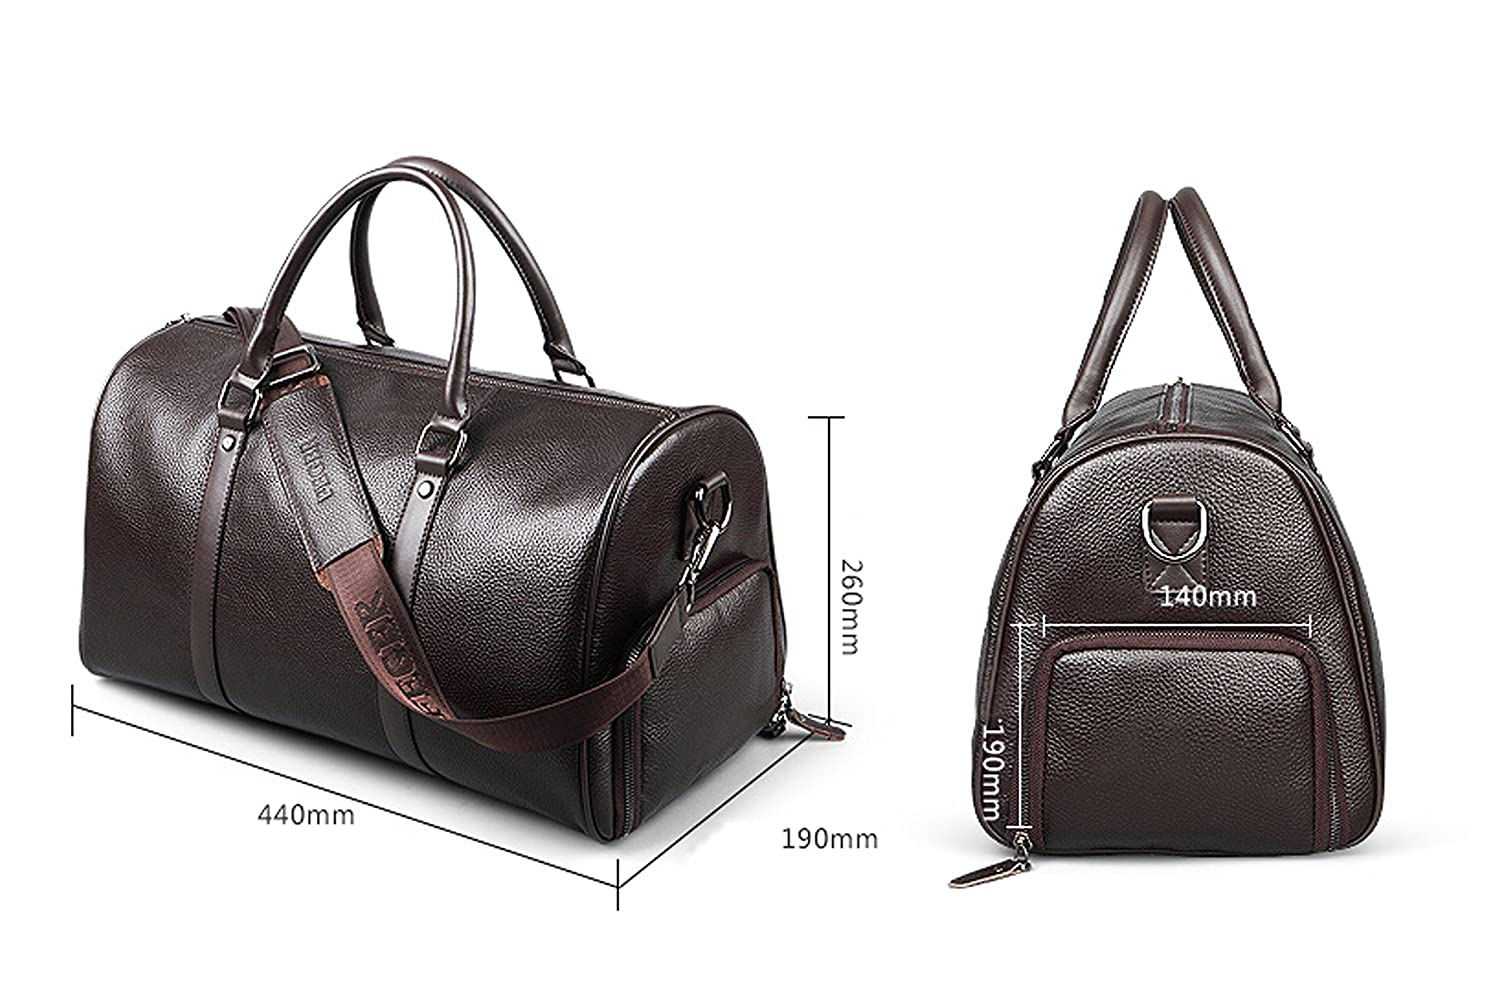 79e2d924b386 FEGER Leather Holdall Travel Bag Weekender Bag Overnight Travel Carry On  Duffel Tote Bag(Brown)  Amazon.co.uk  Luggage